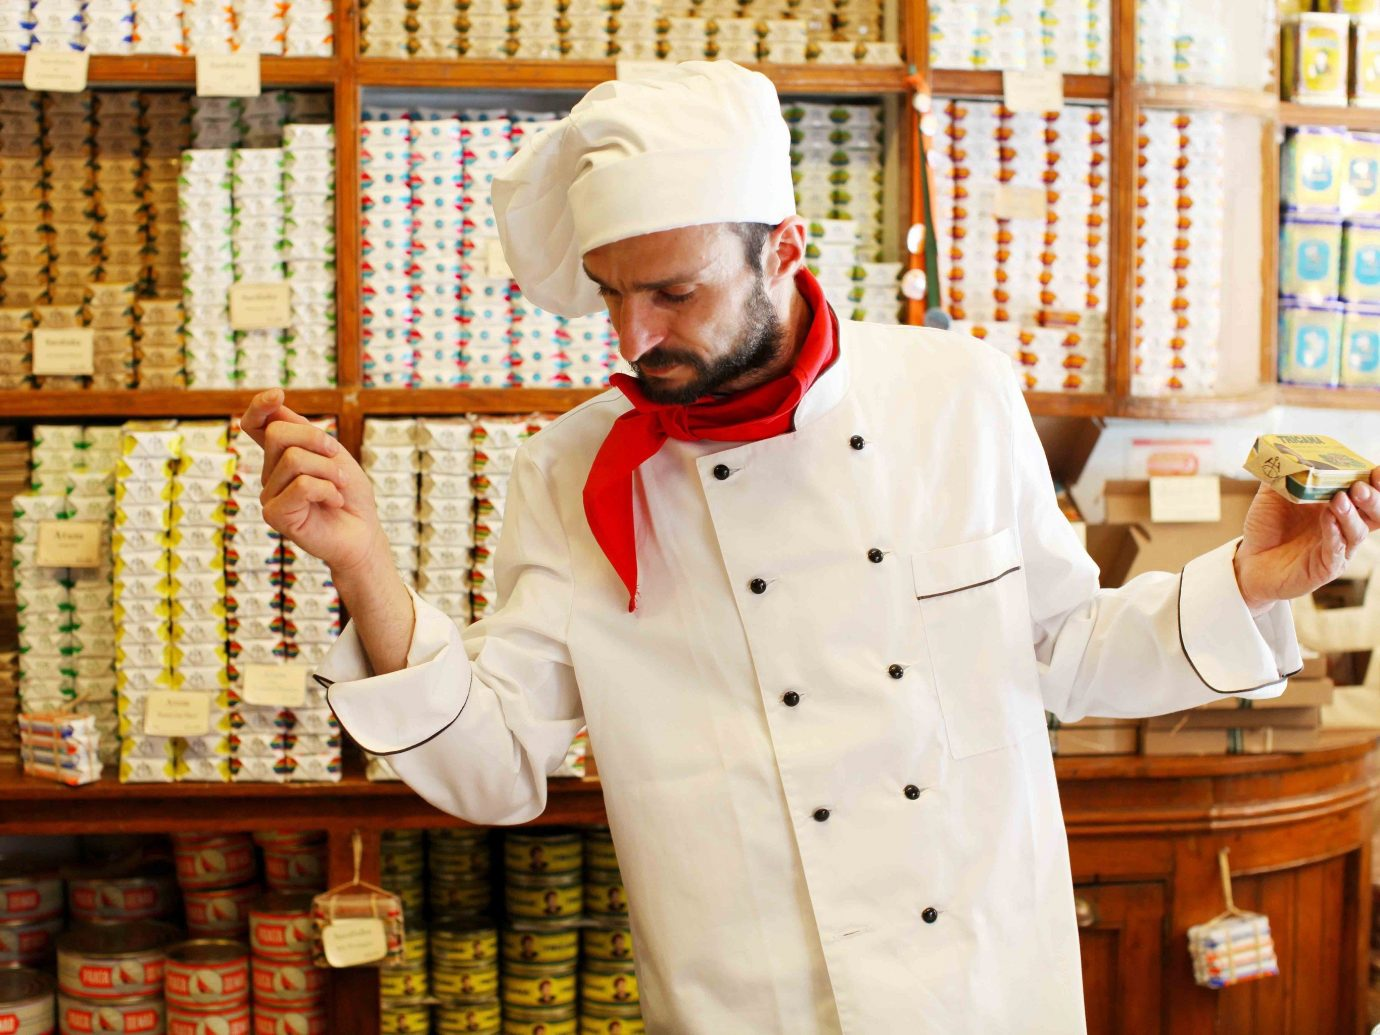 Trip Ideas person indoor cook retail professional grocery store profession pastry chef Shop